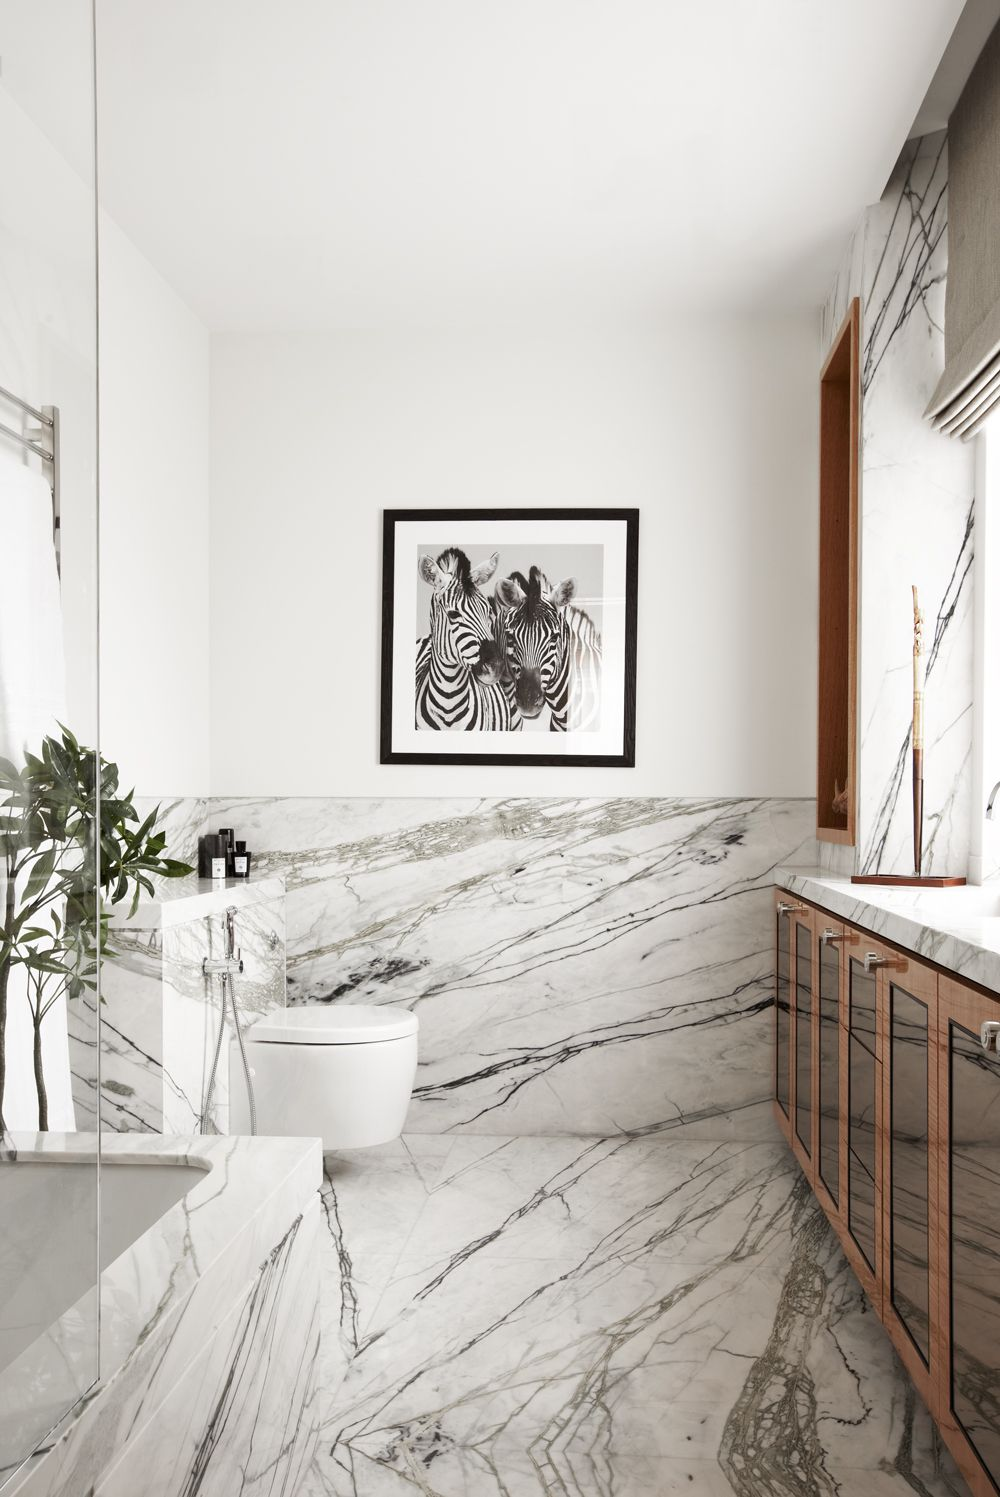 30 Marble Bathroom Design Ideas Styling Up Your Private Daily Rituals White Marble Bathrooms Marble Bathroom Designs Marble Bathroom